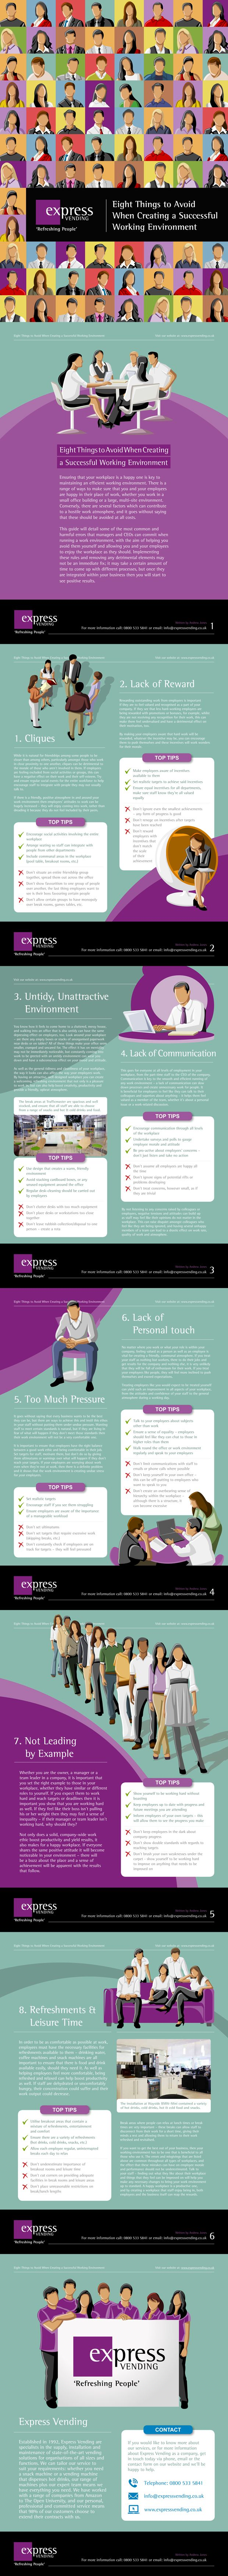 15 best college teaching tips images on pinterest gym learning 8 mistakes to avoid for a successful working environment ebook fandeluxe Image collections